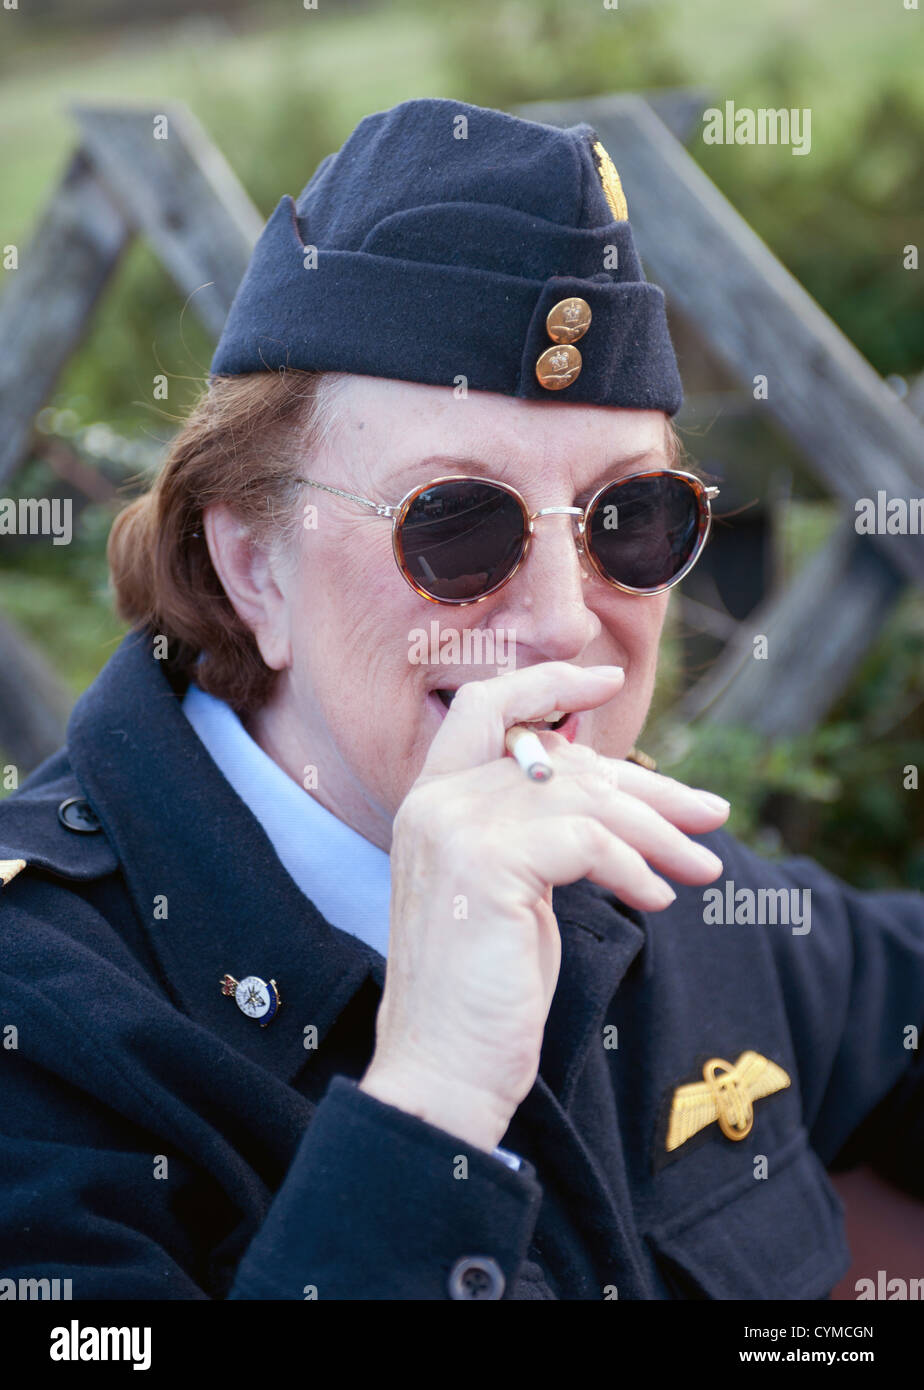 Women smoking in uniform